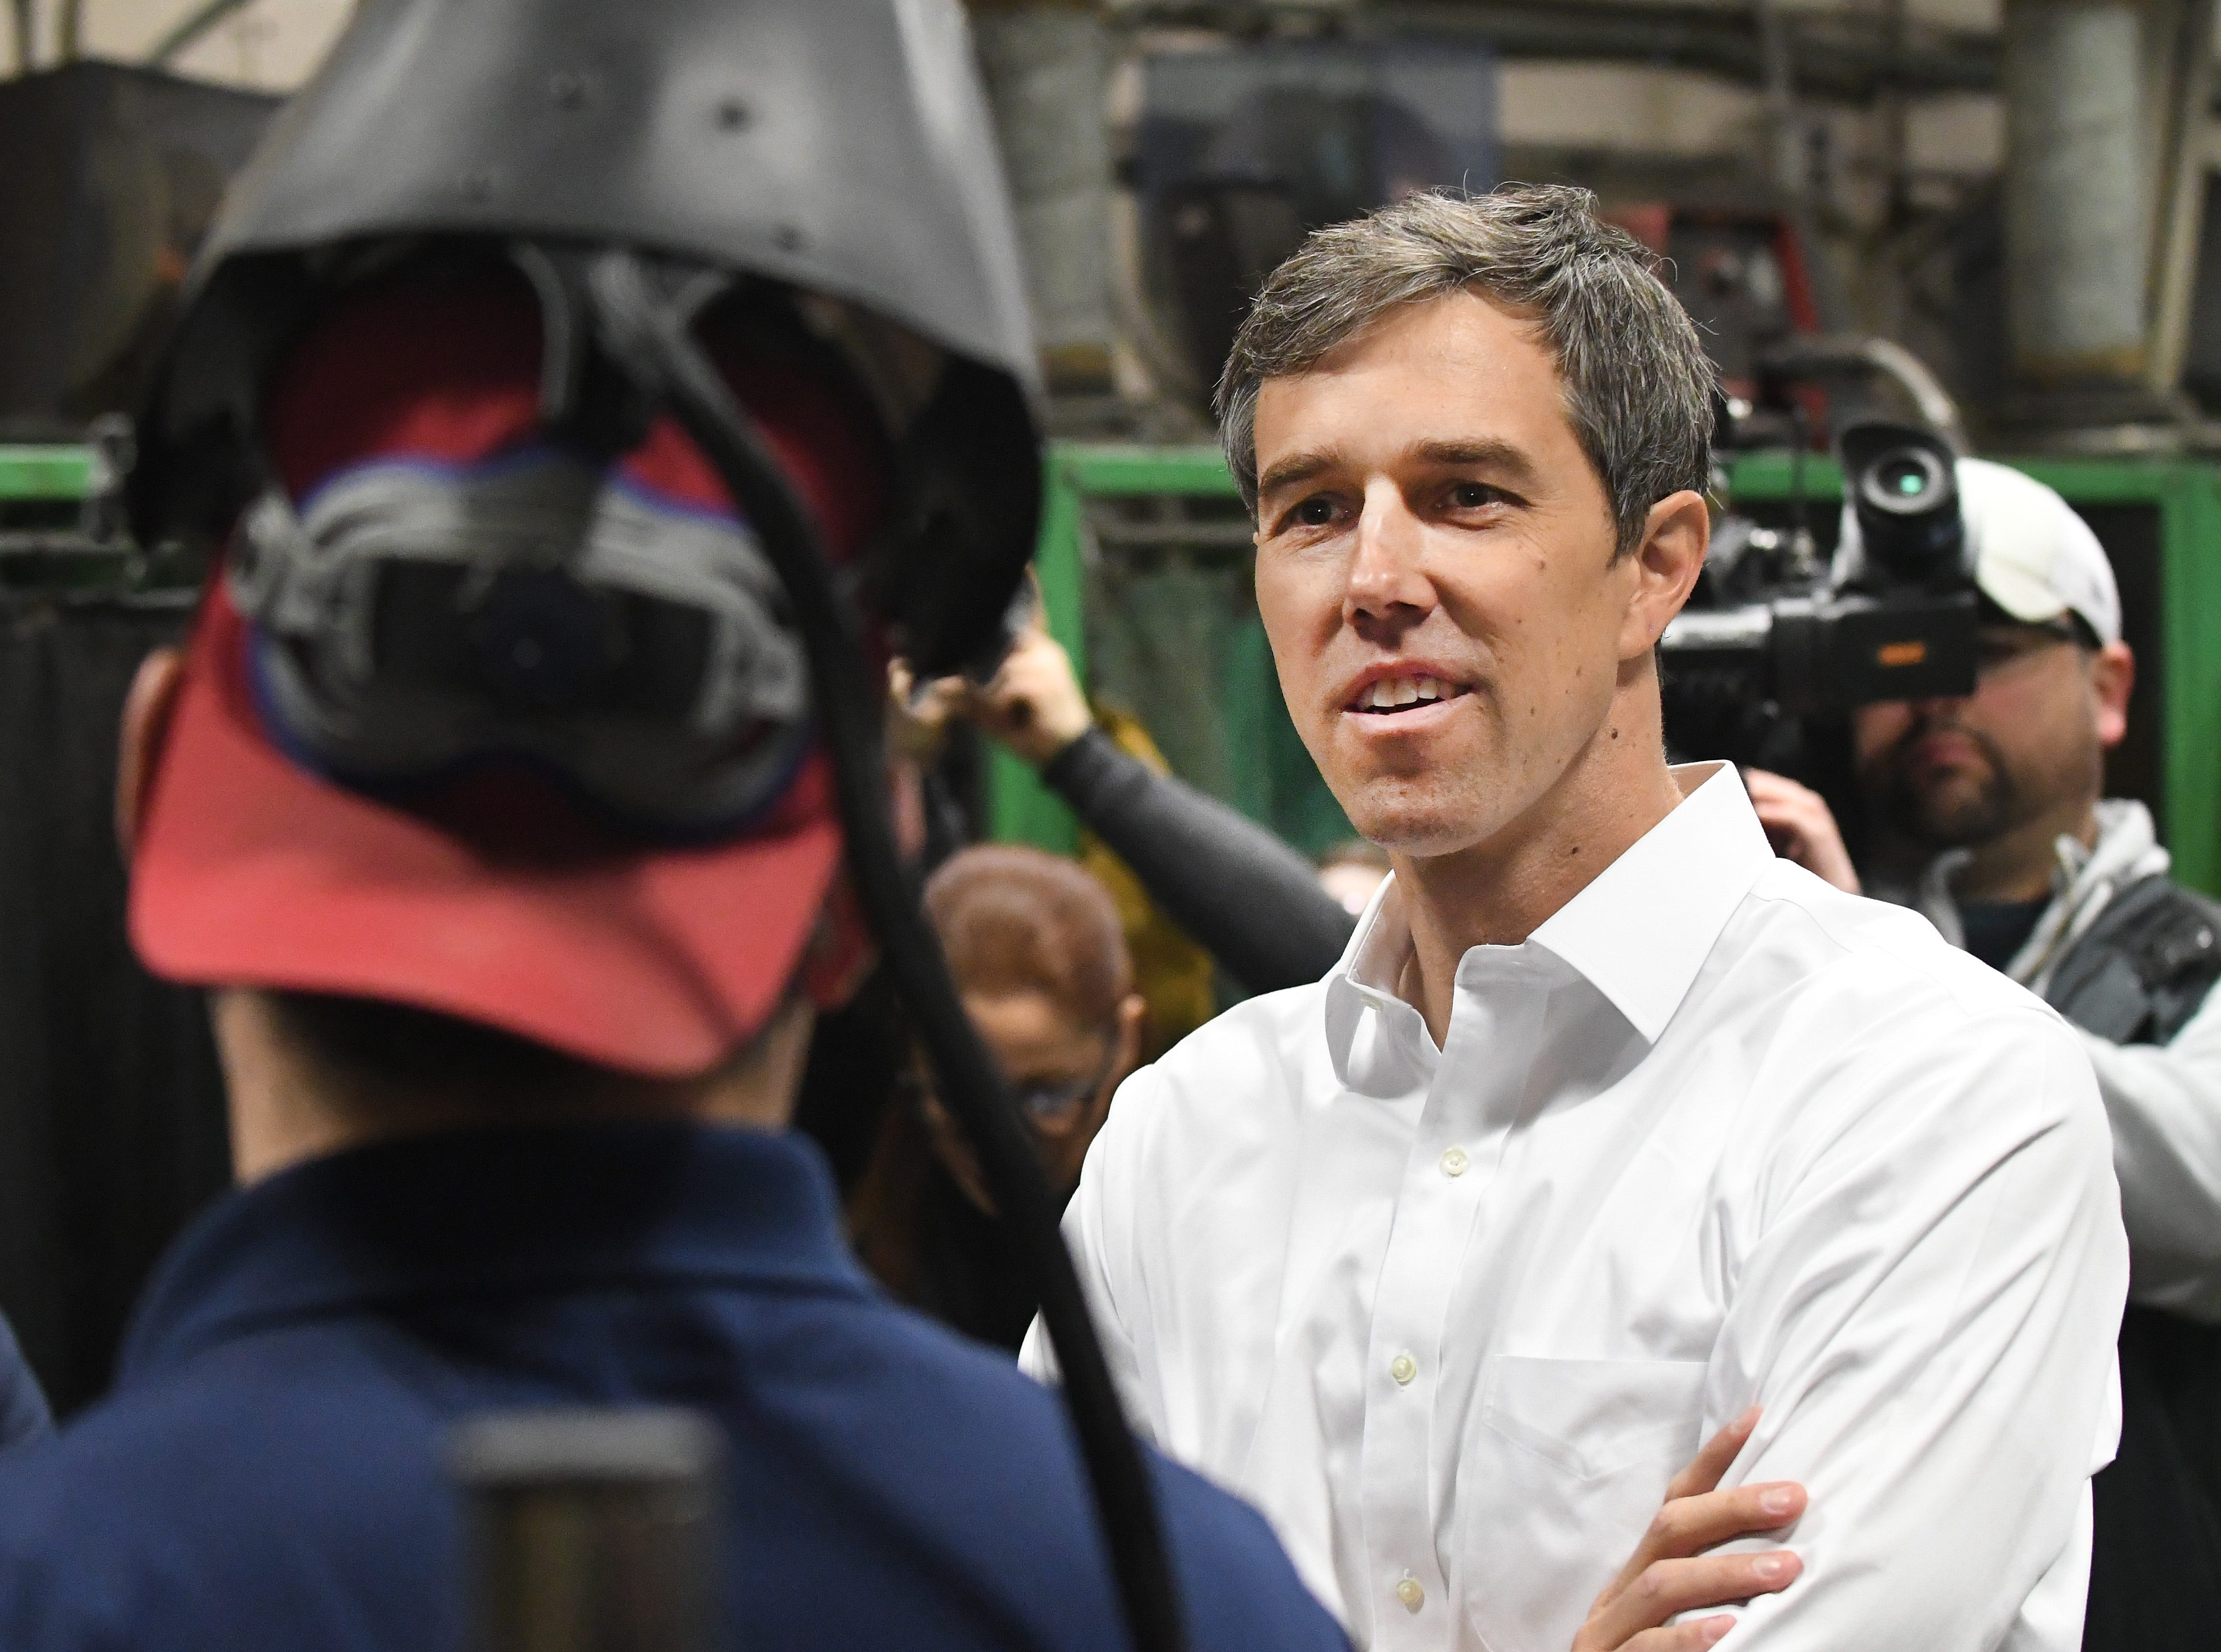 Democratic U.S. presidential candidate Beto O'Rourke during a tour of the Detroit Carpenters Training Center.